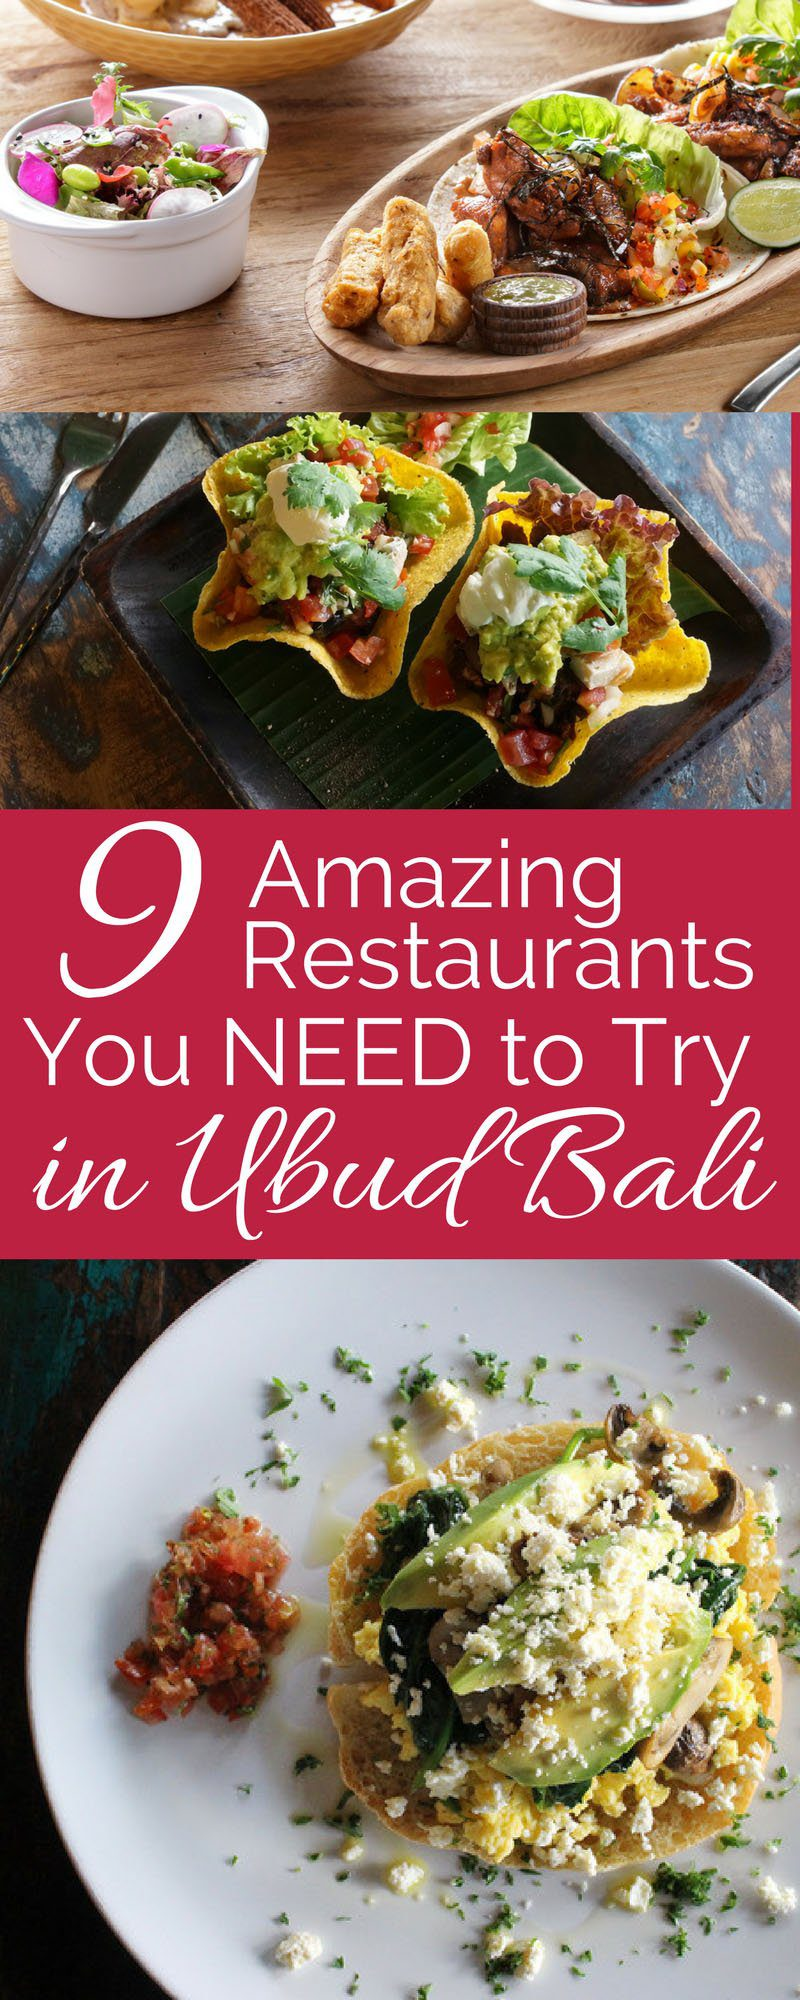 Ubud has a wide and varied selection of restaurants that cater to every taste. Ever since Julia Roberts put Ubud on the map with 'Eat, Pray, Love,' tourists have been flocking to this small town in the uplands of Bali. Click on the photo to see the list of the best restaurants in Ubud.